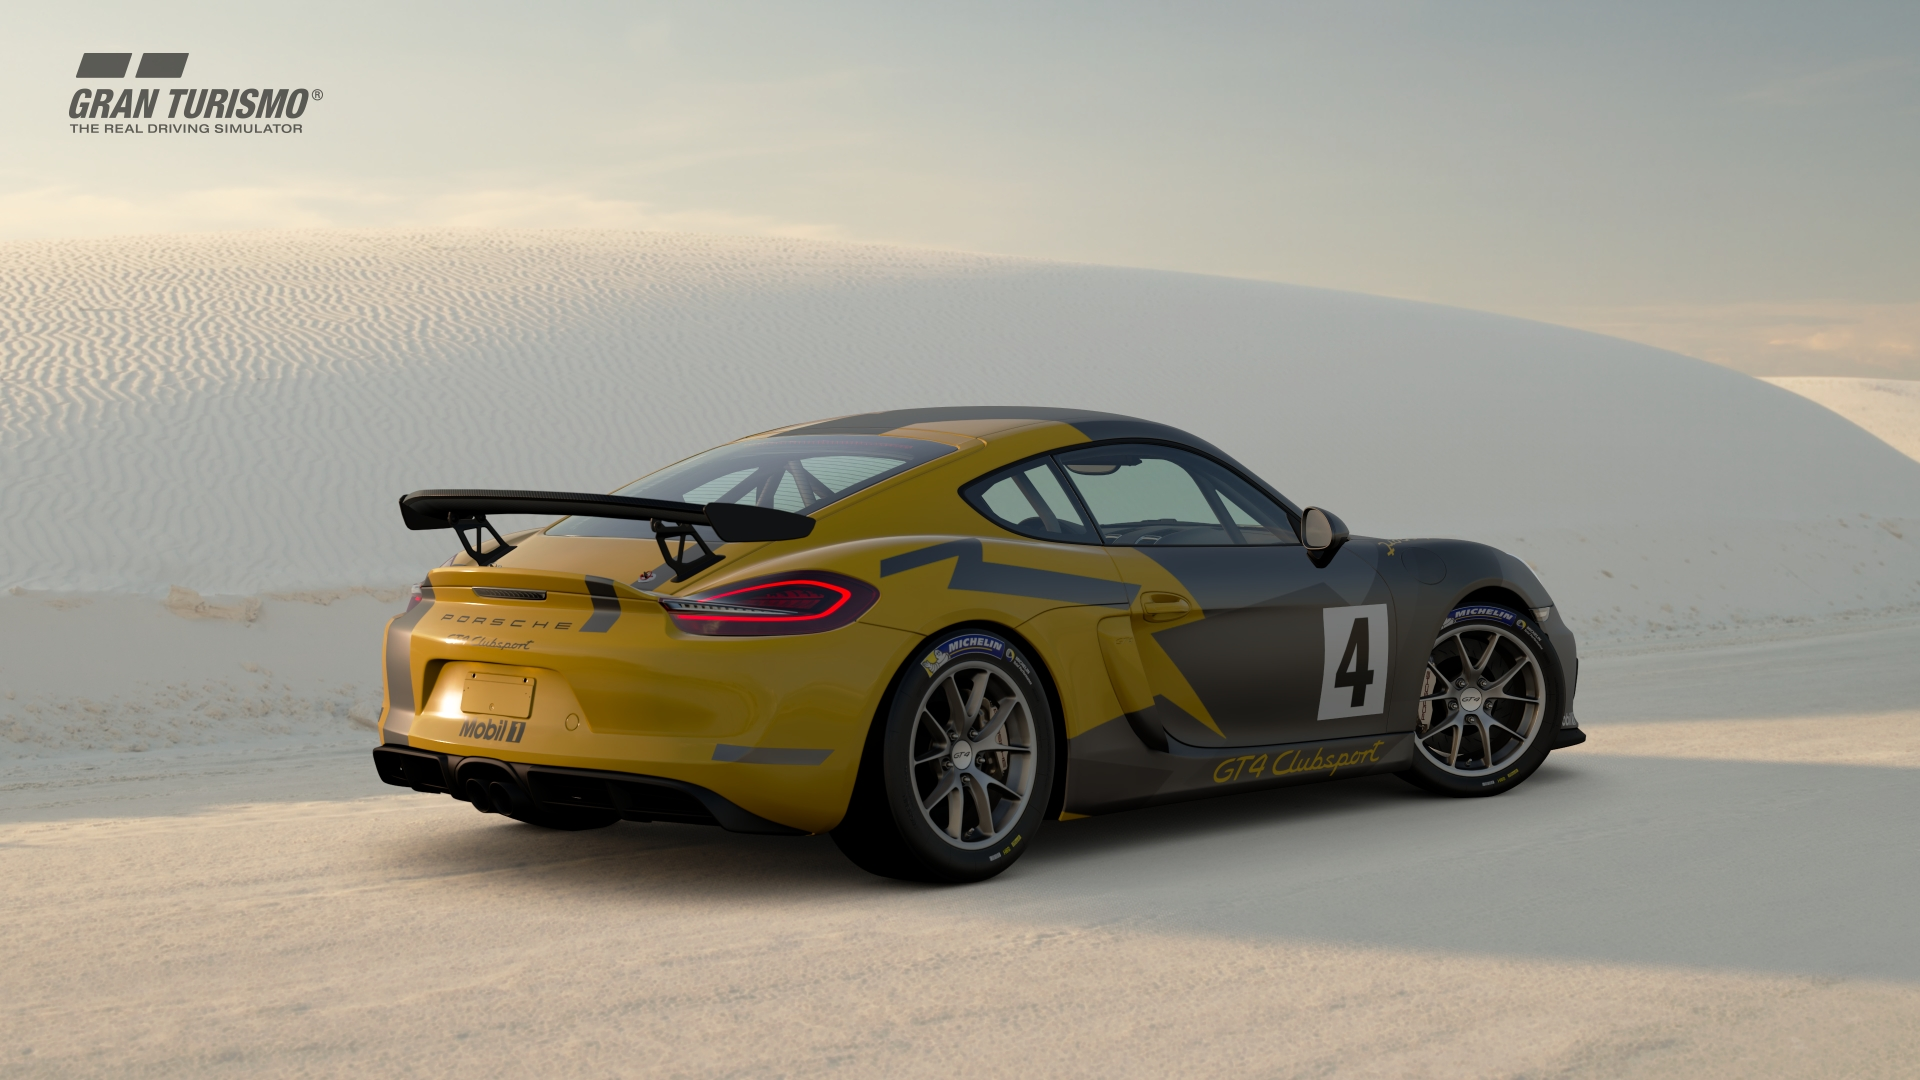 2018 Mustang Wallpaper >> Gran Turismo Sport Porsche Cayman GT4, HD Games, 4k Wallpapers, Images, Backgrounds, Photos and ...